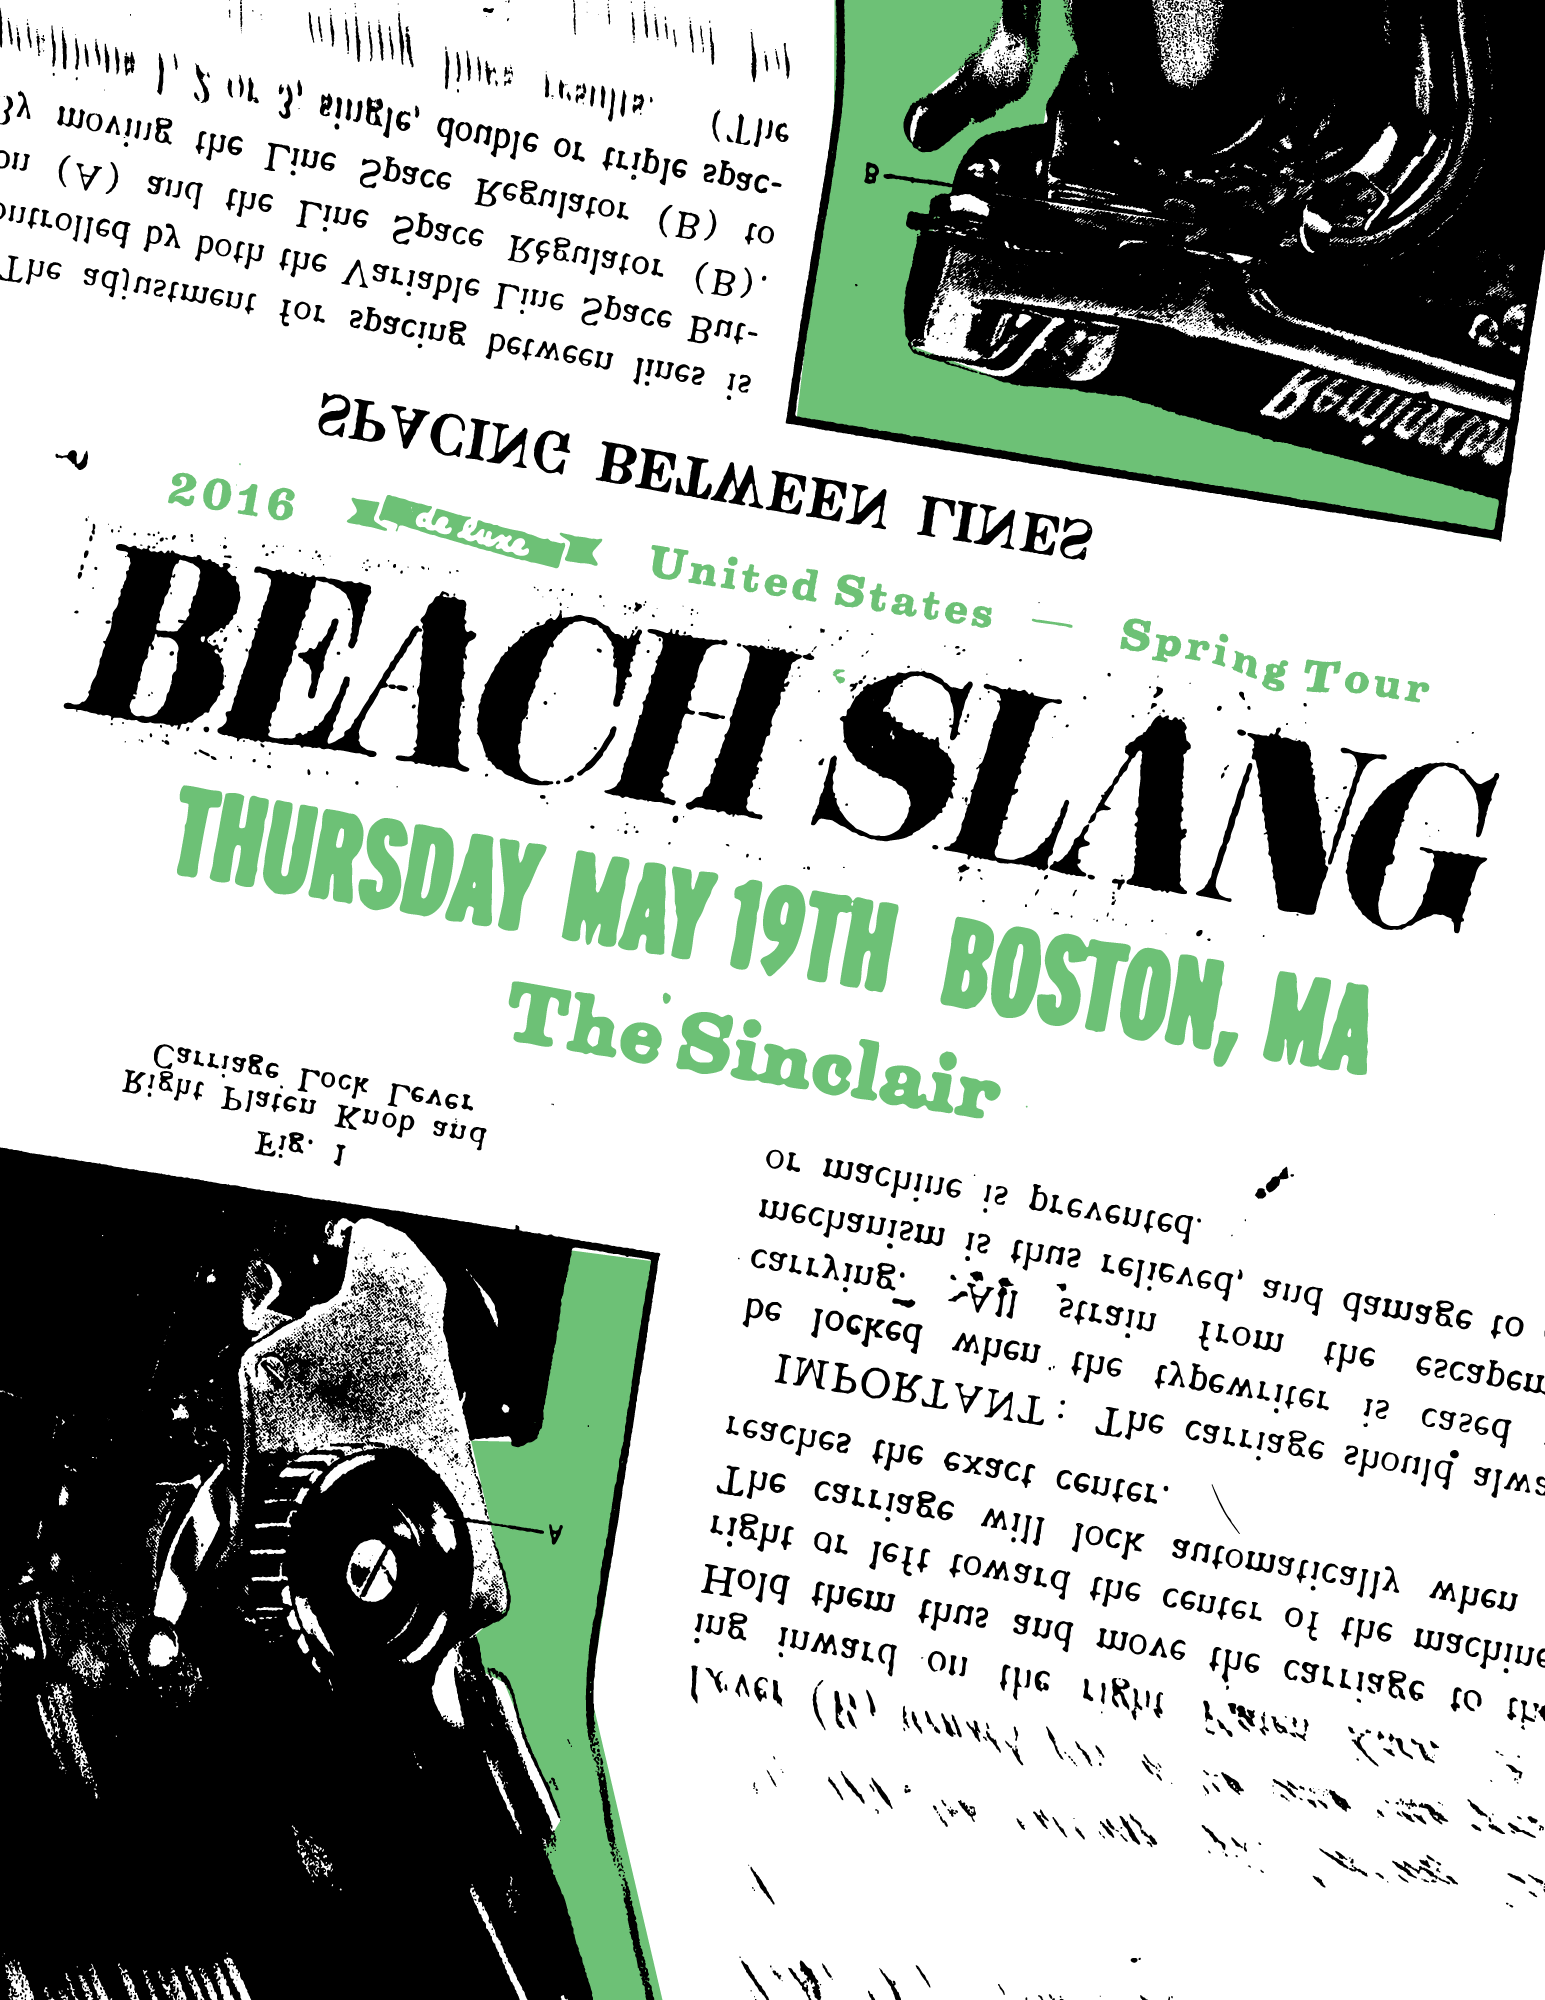 BeachSlang_5-19_Boston_r1.png